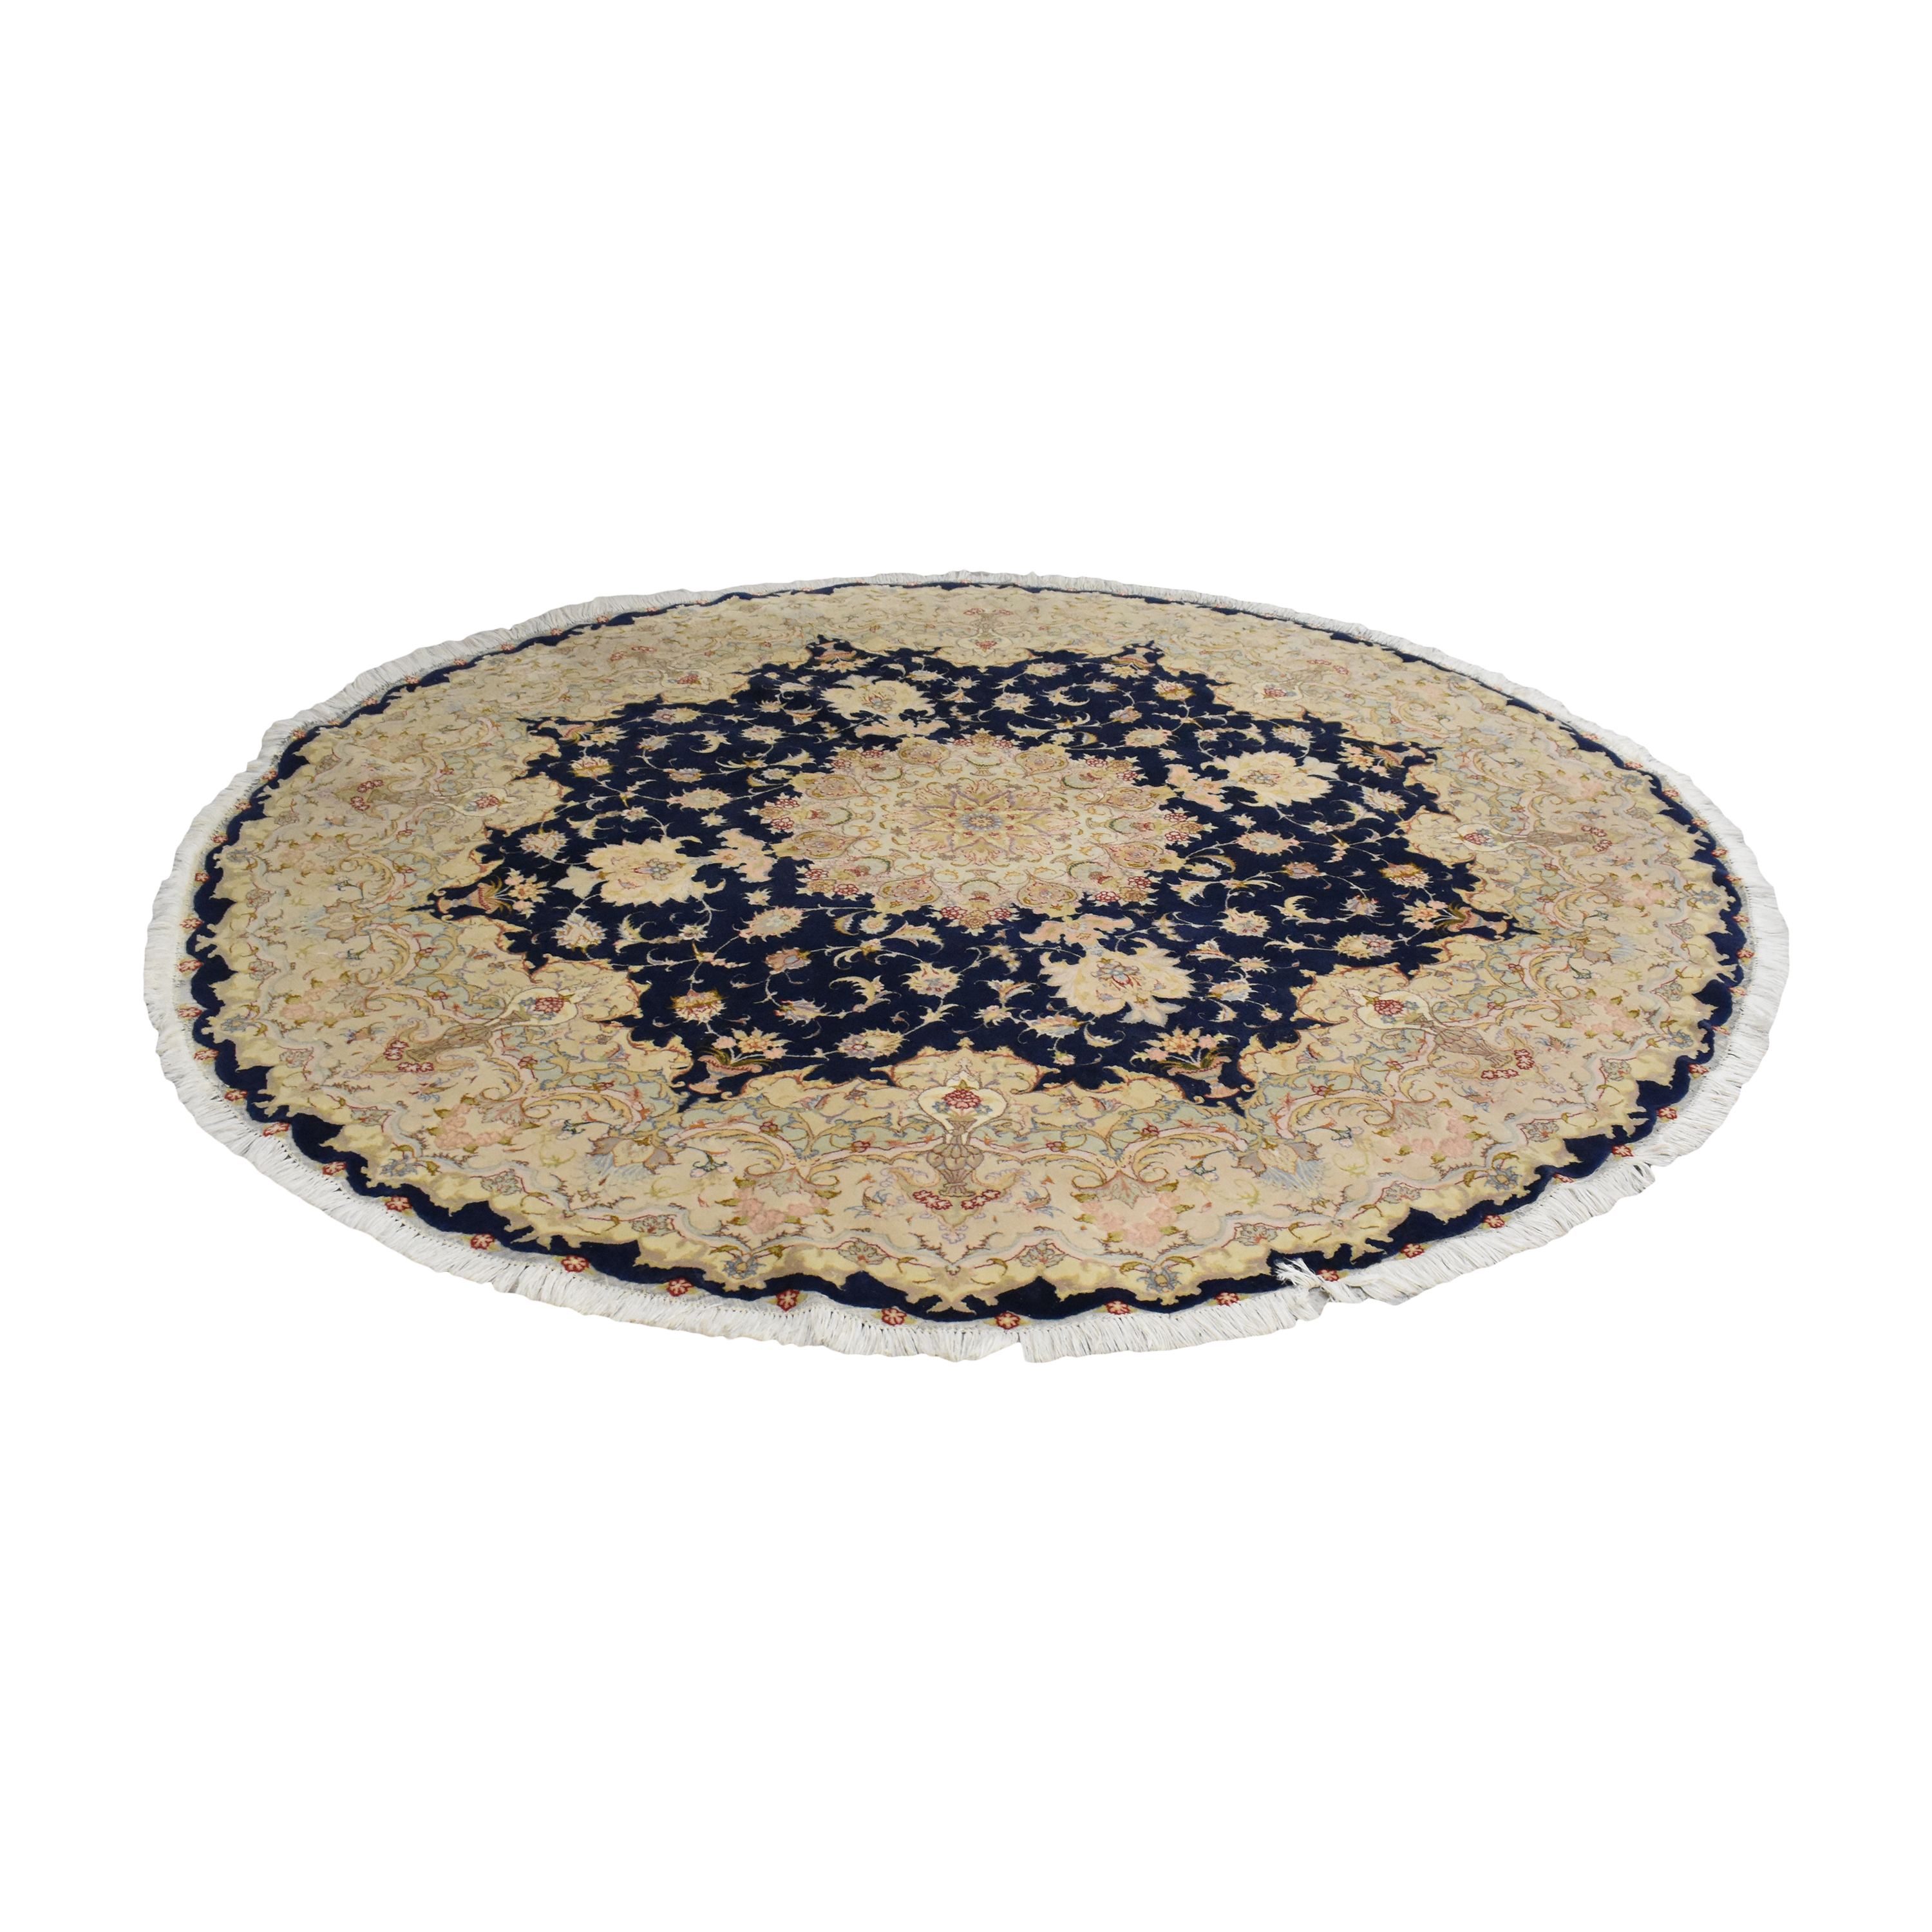 Round Patterned Rug with Tassels coupon